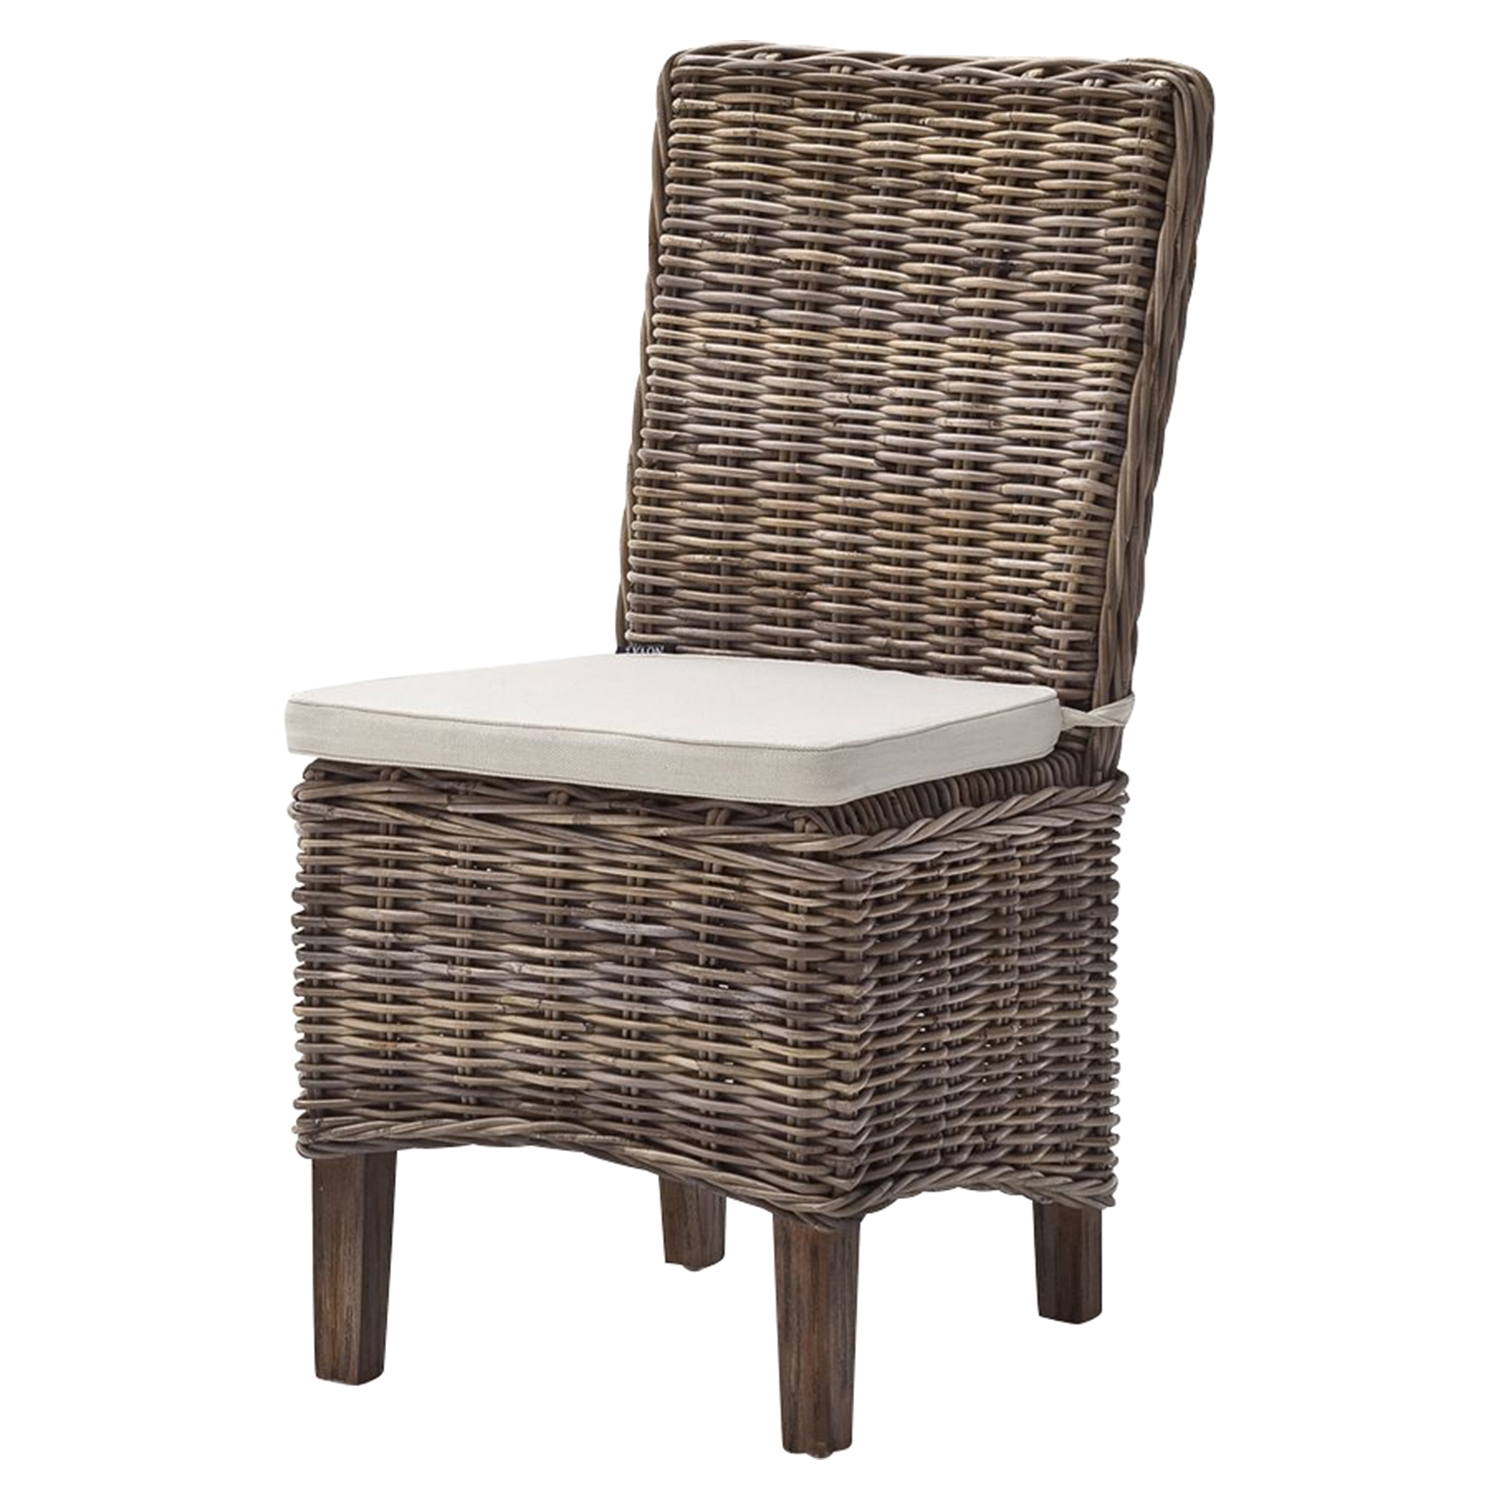 Wickerworks Morin Dining Chair with Cushion - Natural Gray (Set of 2) - NSOLO-CR14